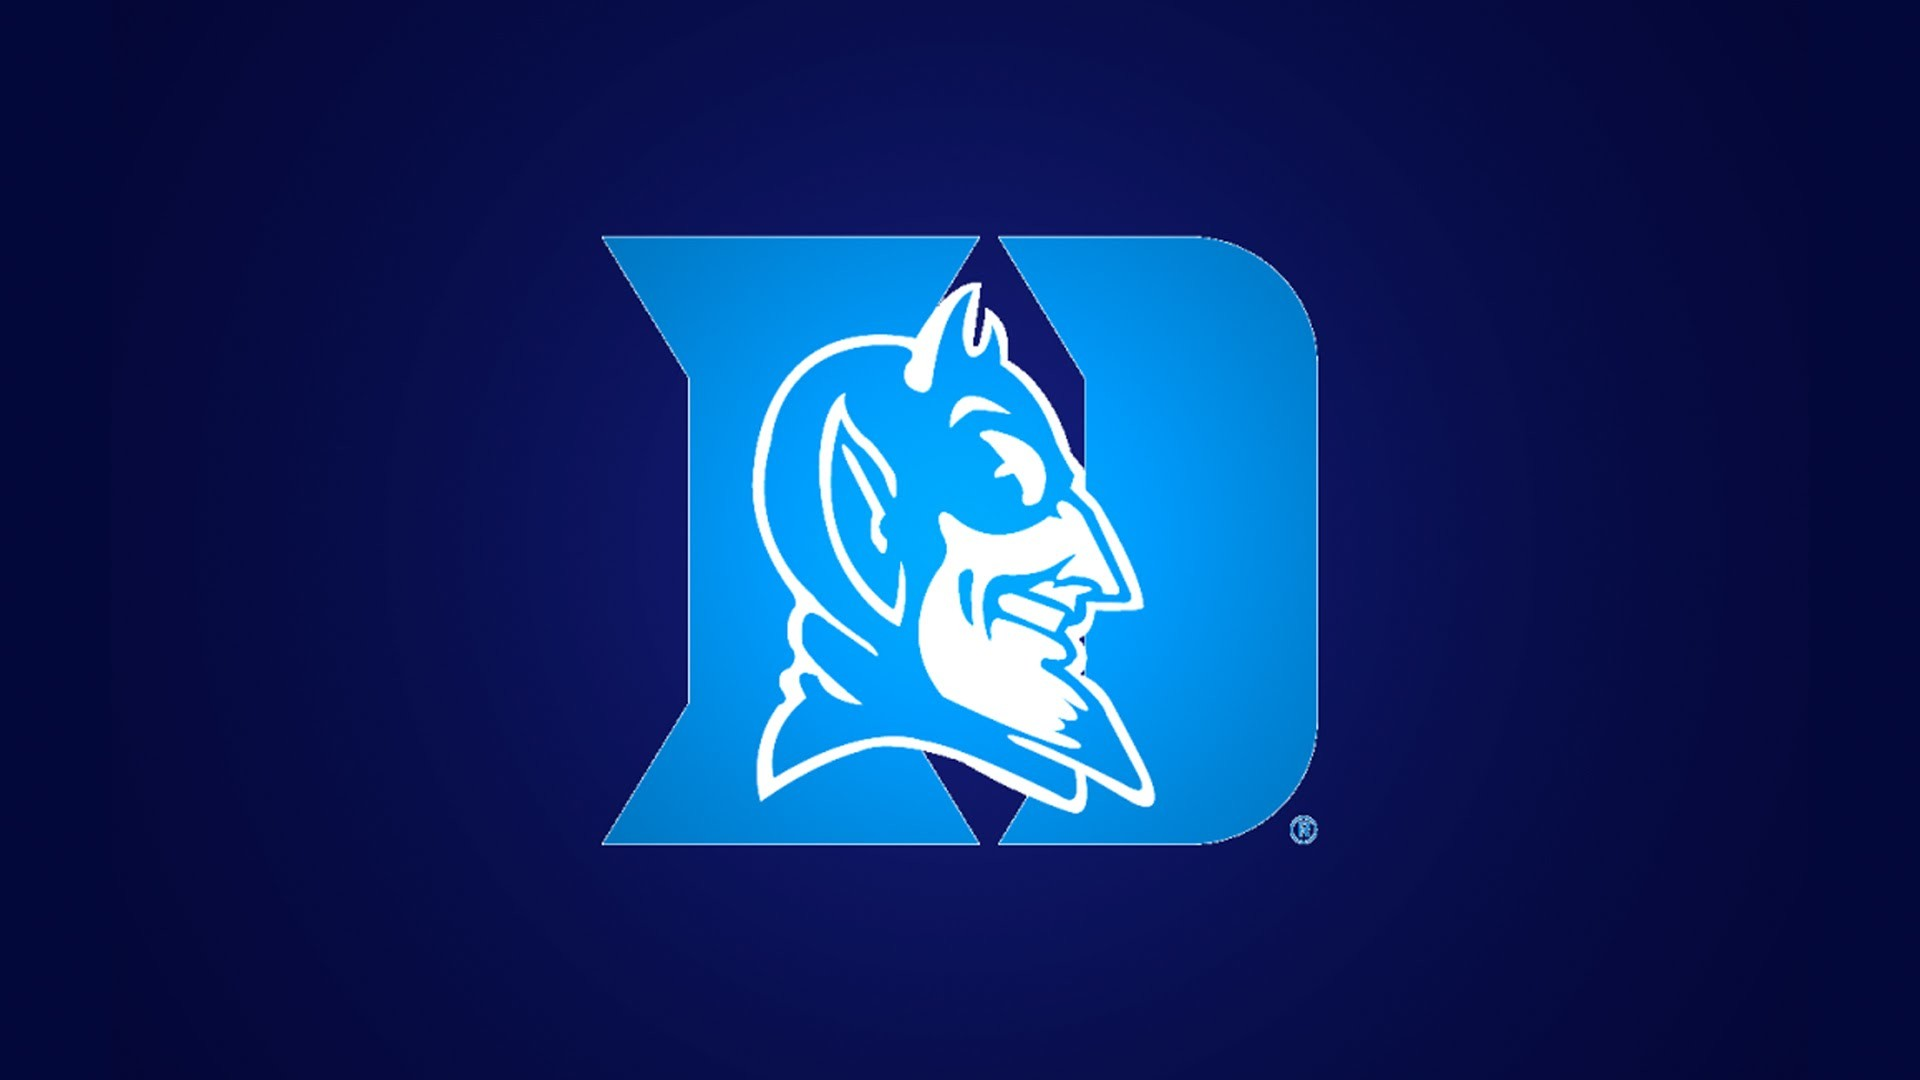 Res: 1920x1080, Collection of Duke Blue Devils Basketball Wallpaper on HDWallpapers